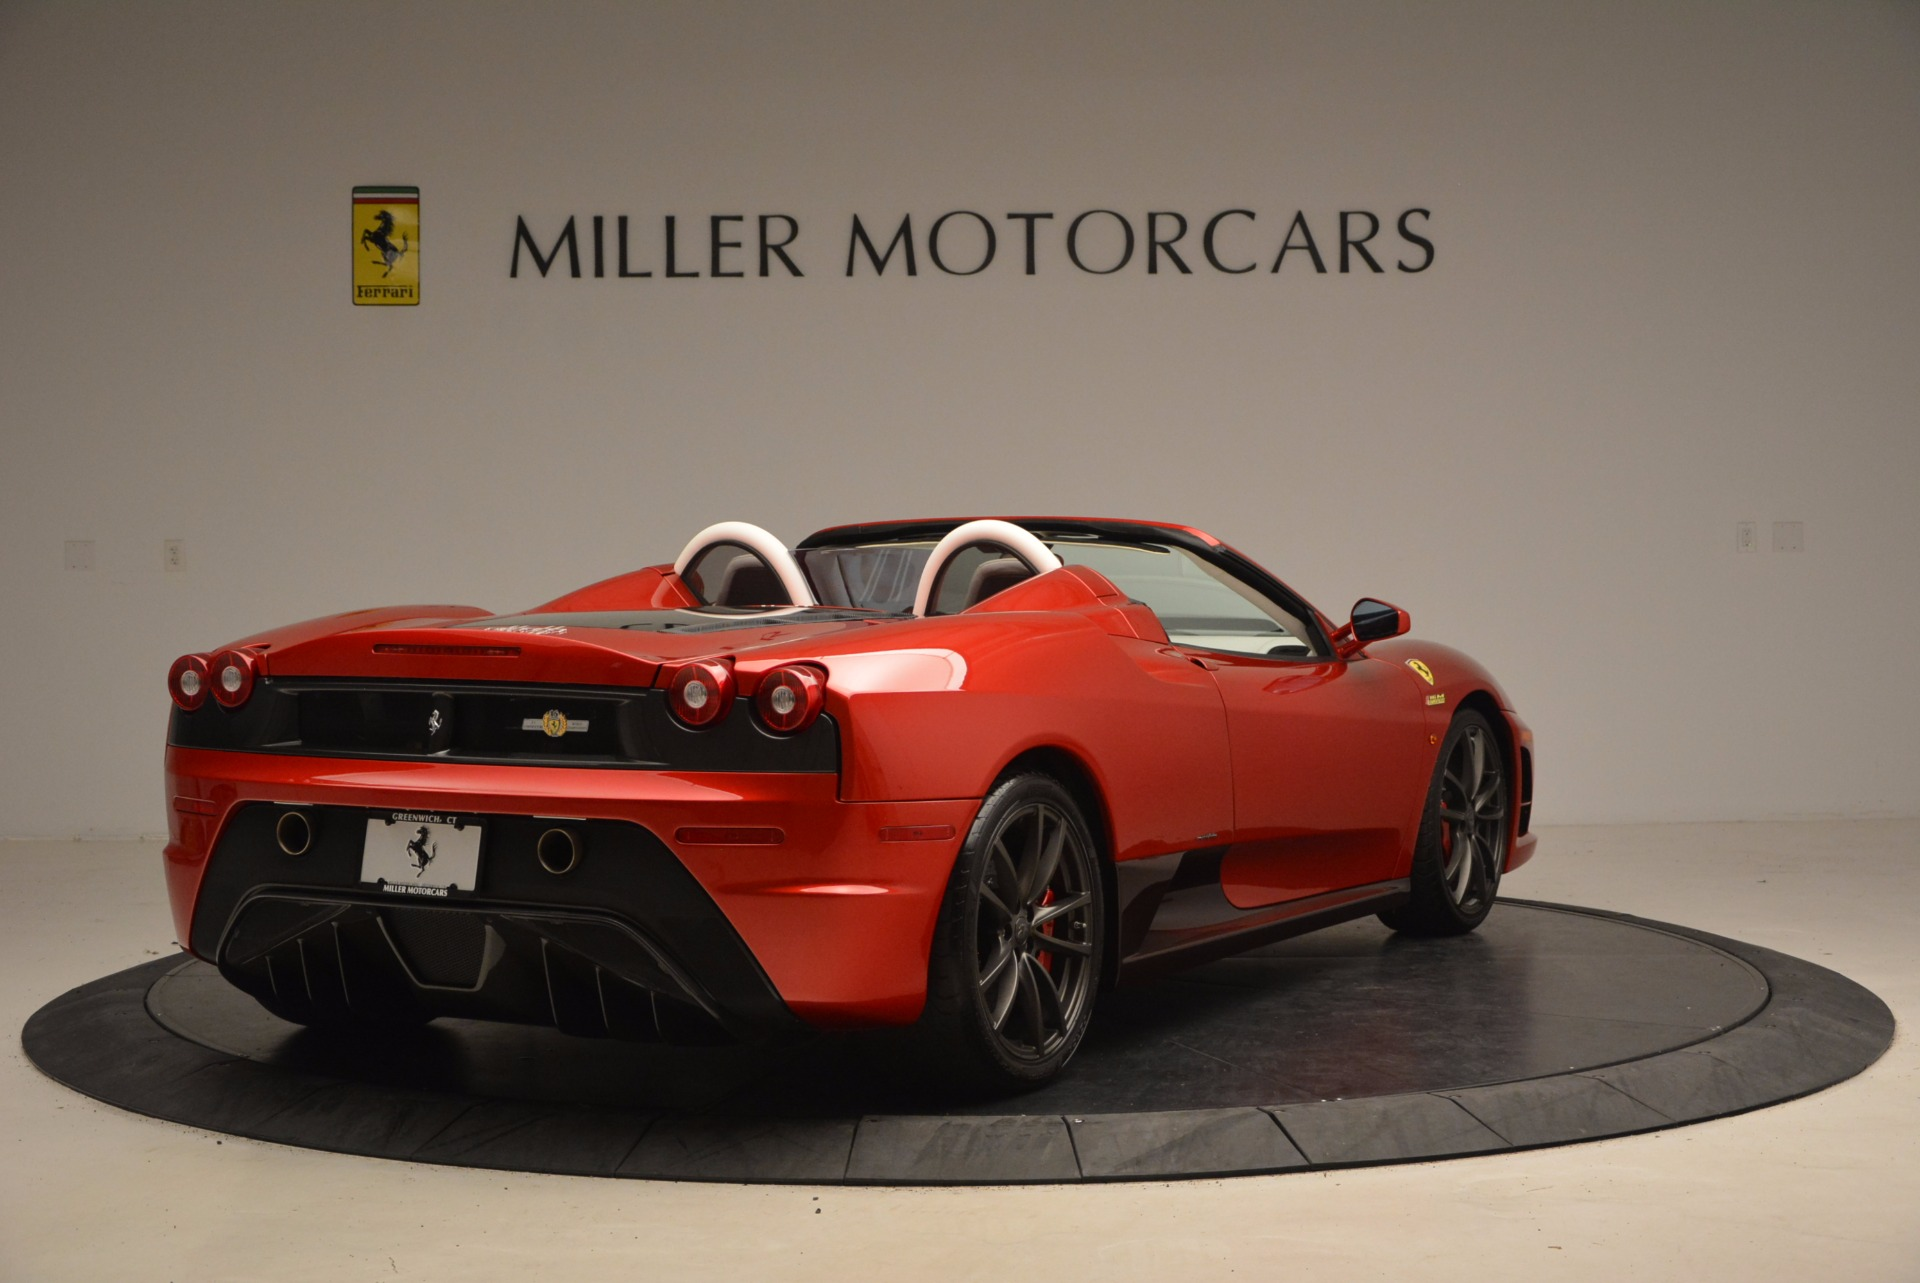 Used 2009 Ferrari F430 Scuderia 16M For Sale In Westport, CT 1398_p7